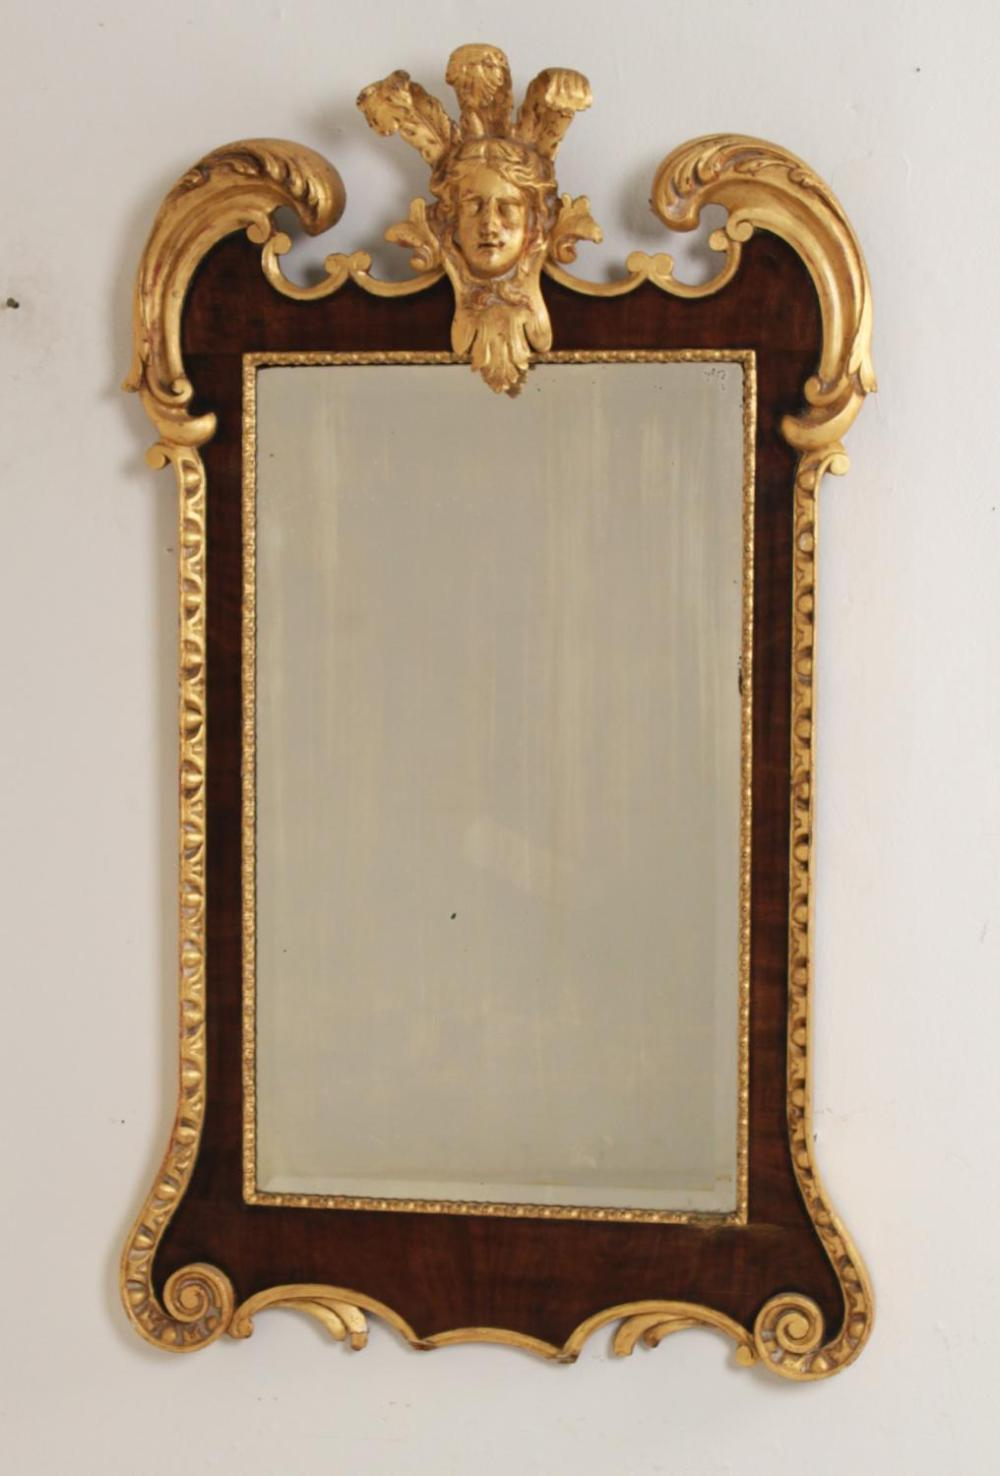 Mirrors for Sale at Online Auction | Buy Modern & Antique Mirrors ...